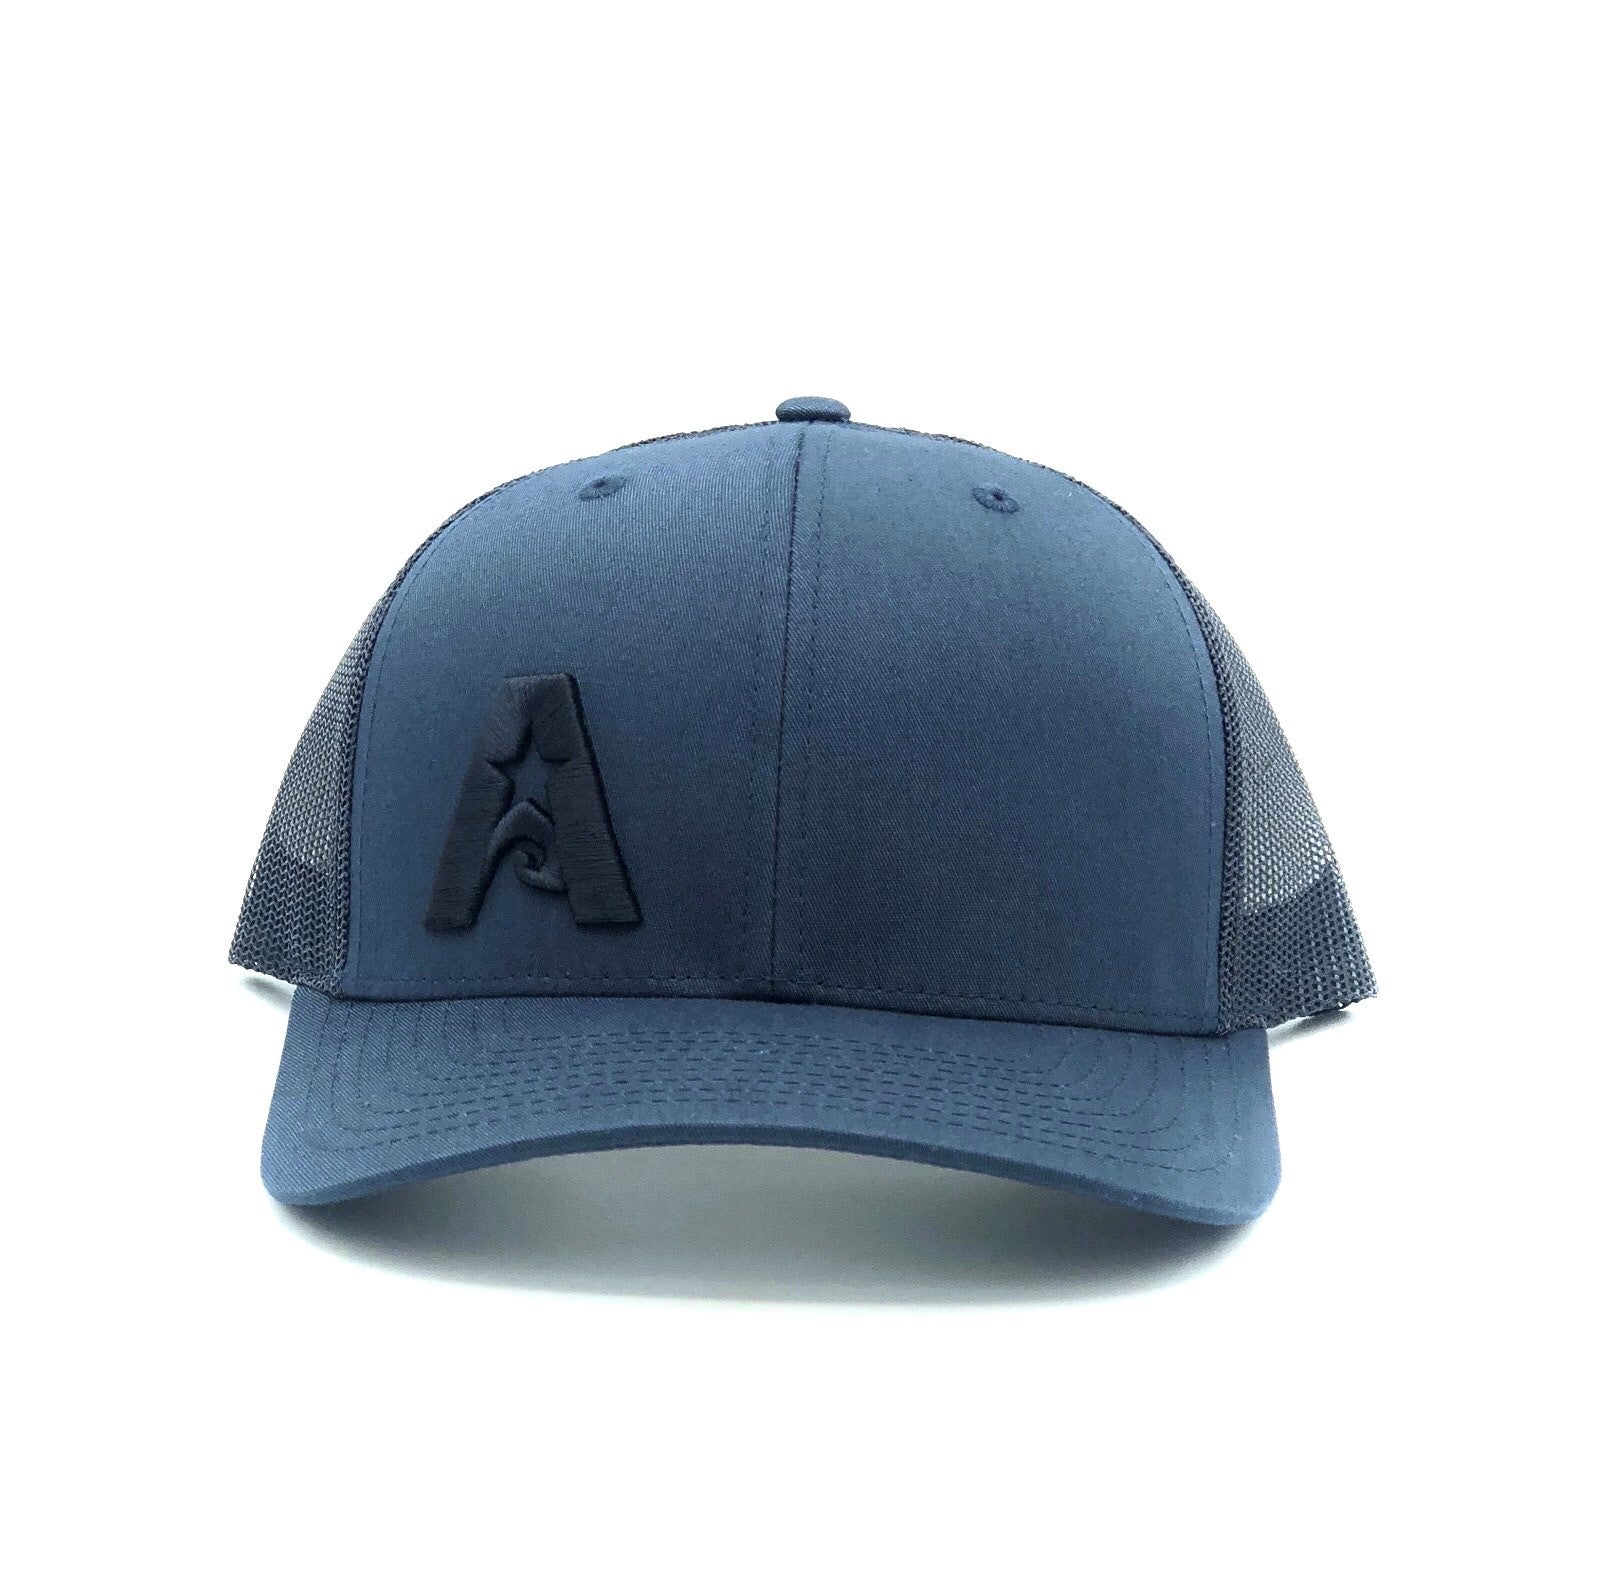 American Aquatic 3D Embroidered Logo Hat